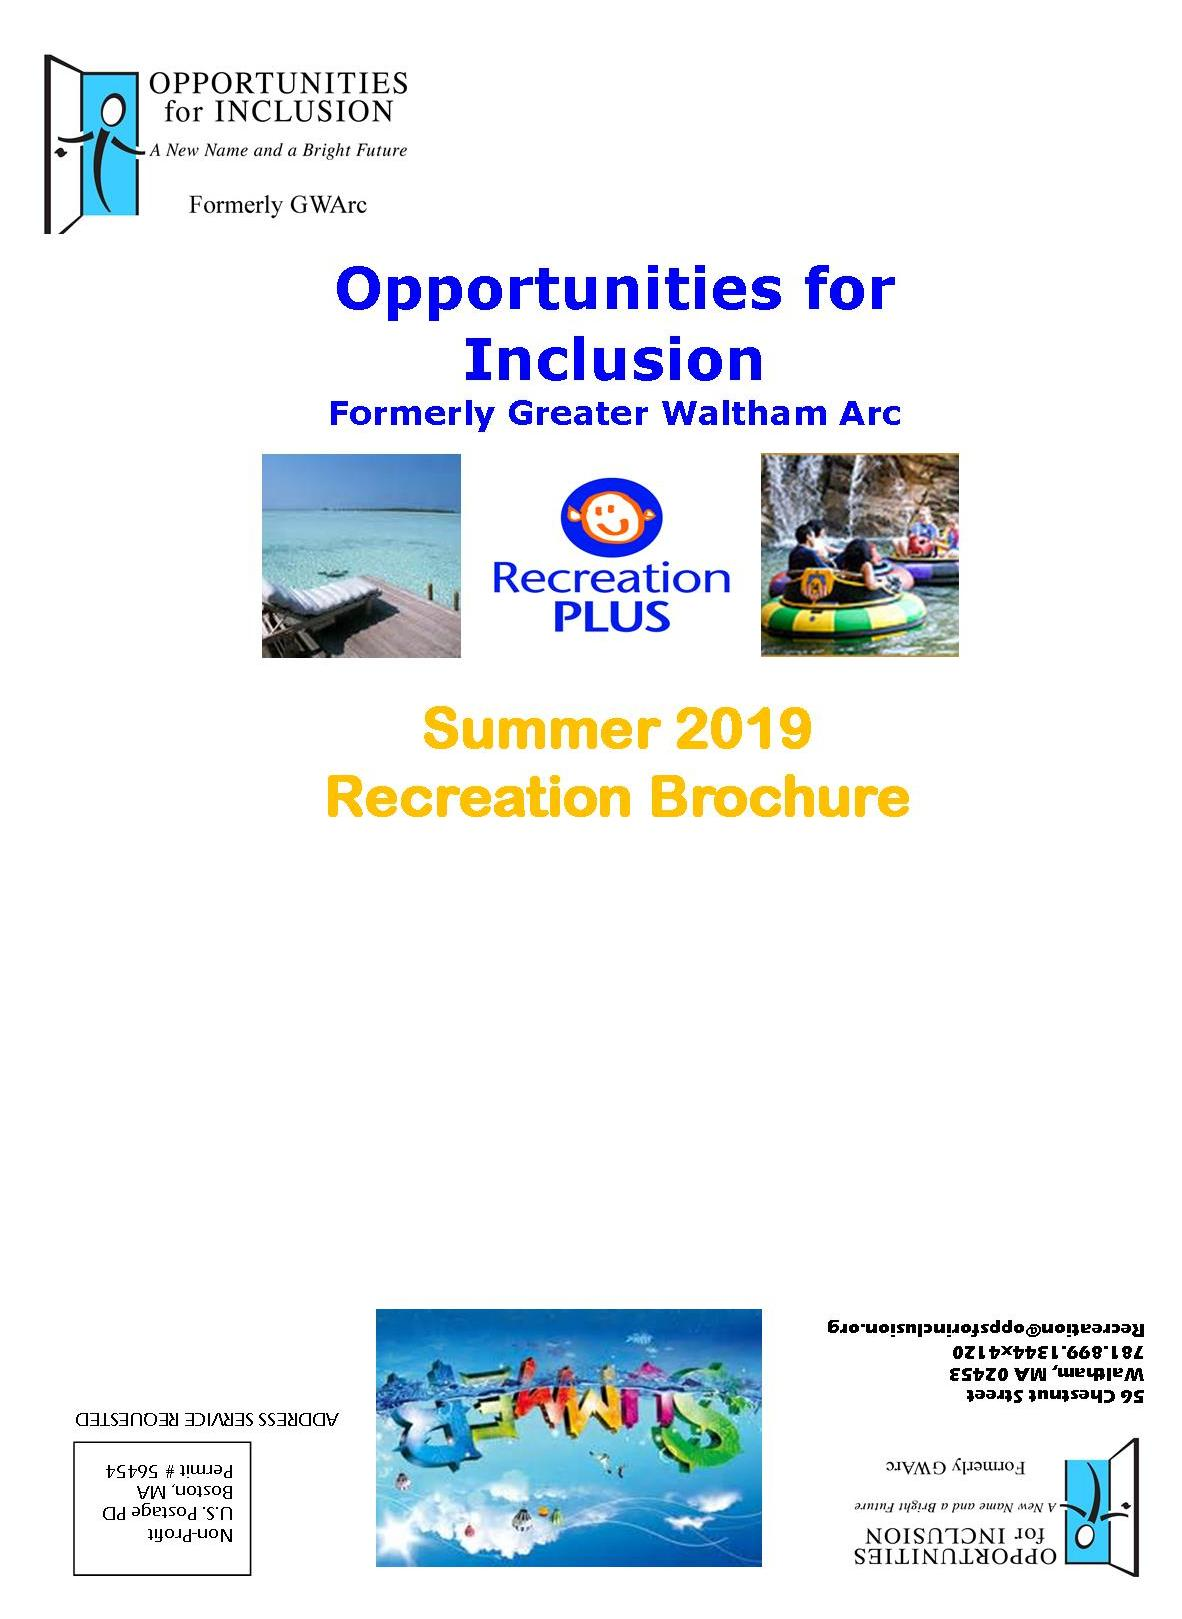 Summer_2019_Recreation_Brochure_for_the_web20190524100434